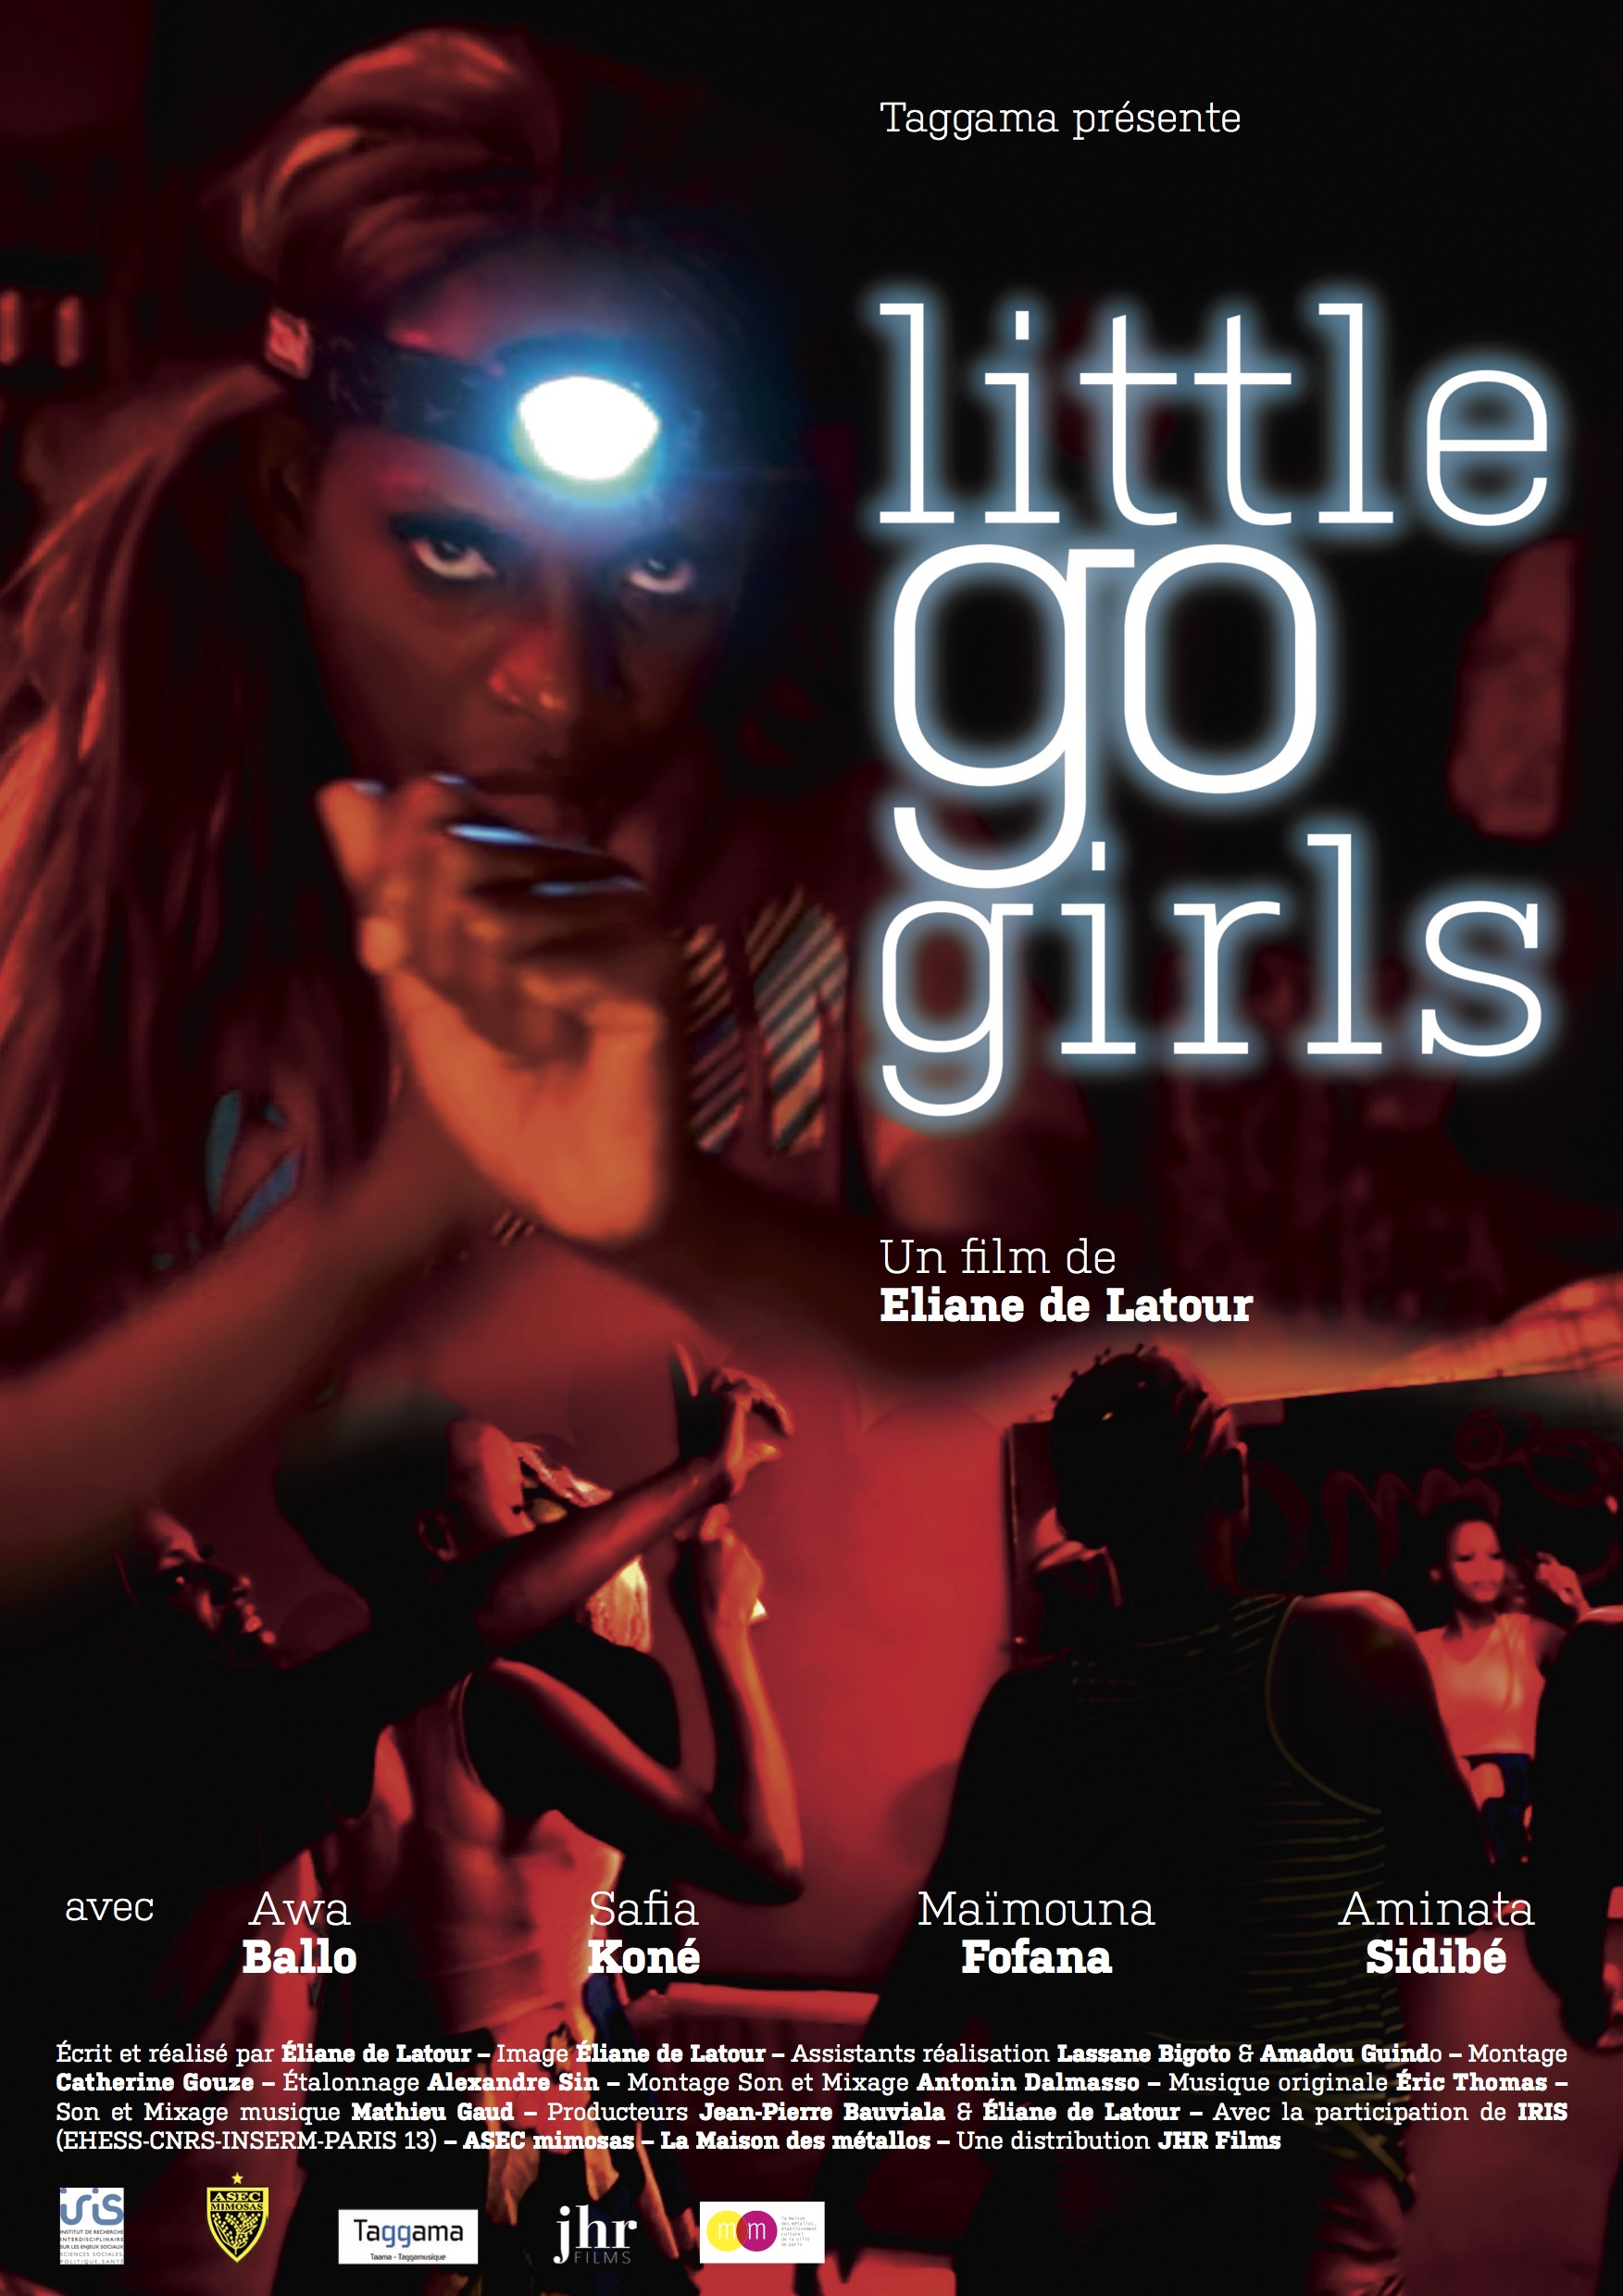 Sortie nationale du film Little Go Girls d'Eliane de Latour